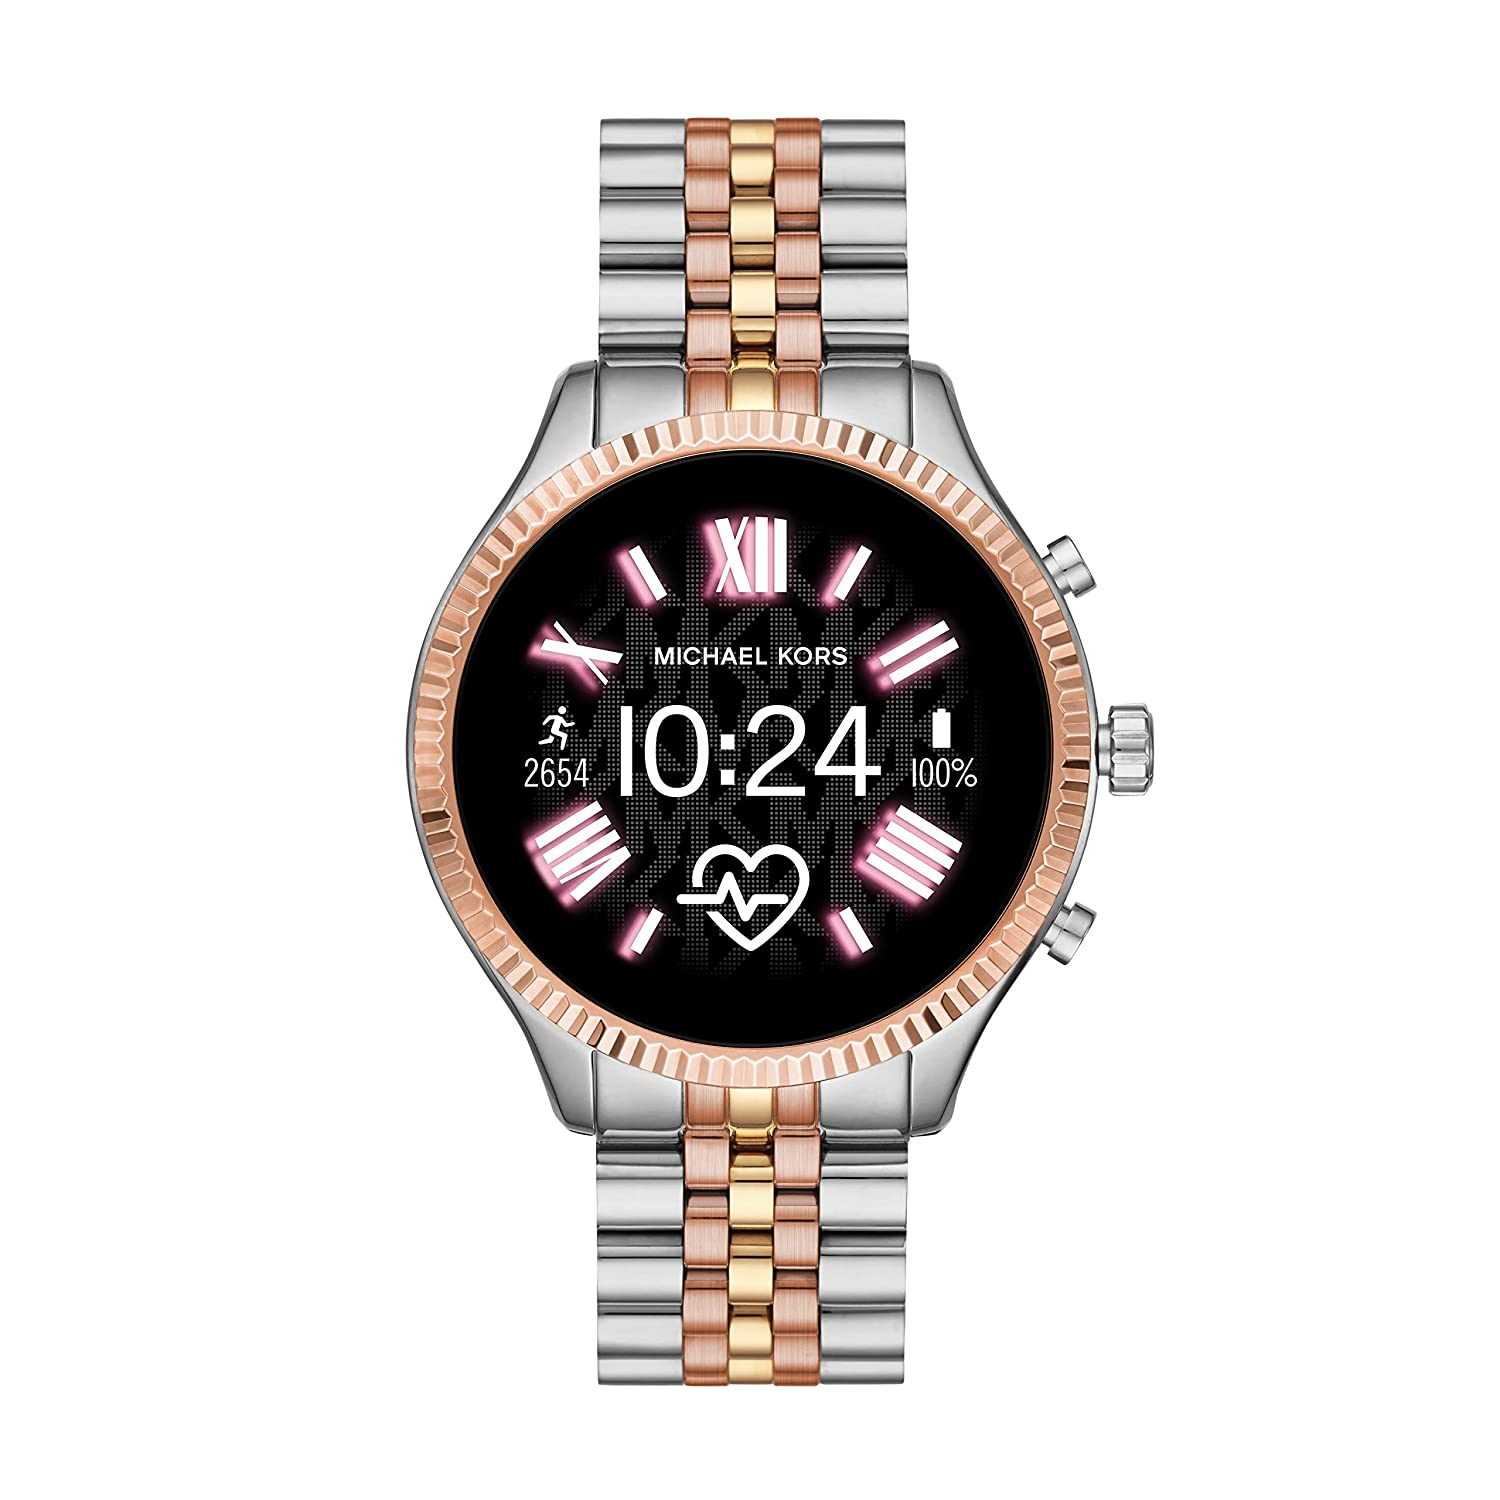 Michael Kors Access Lexington 2 Smartwatch- Powered with Wear OS by Google with Speaker, Heart Rate, GPS, NFC, and Smartphone Notifications